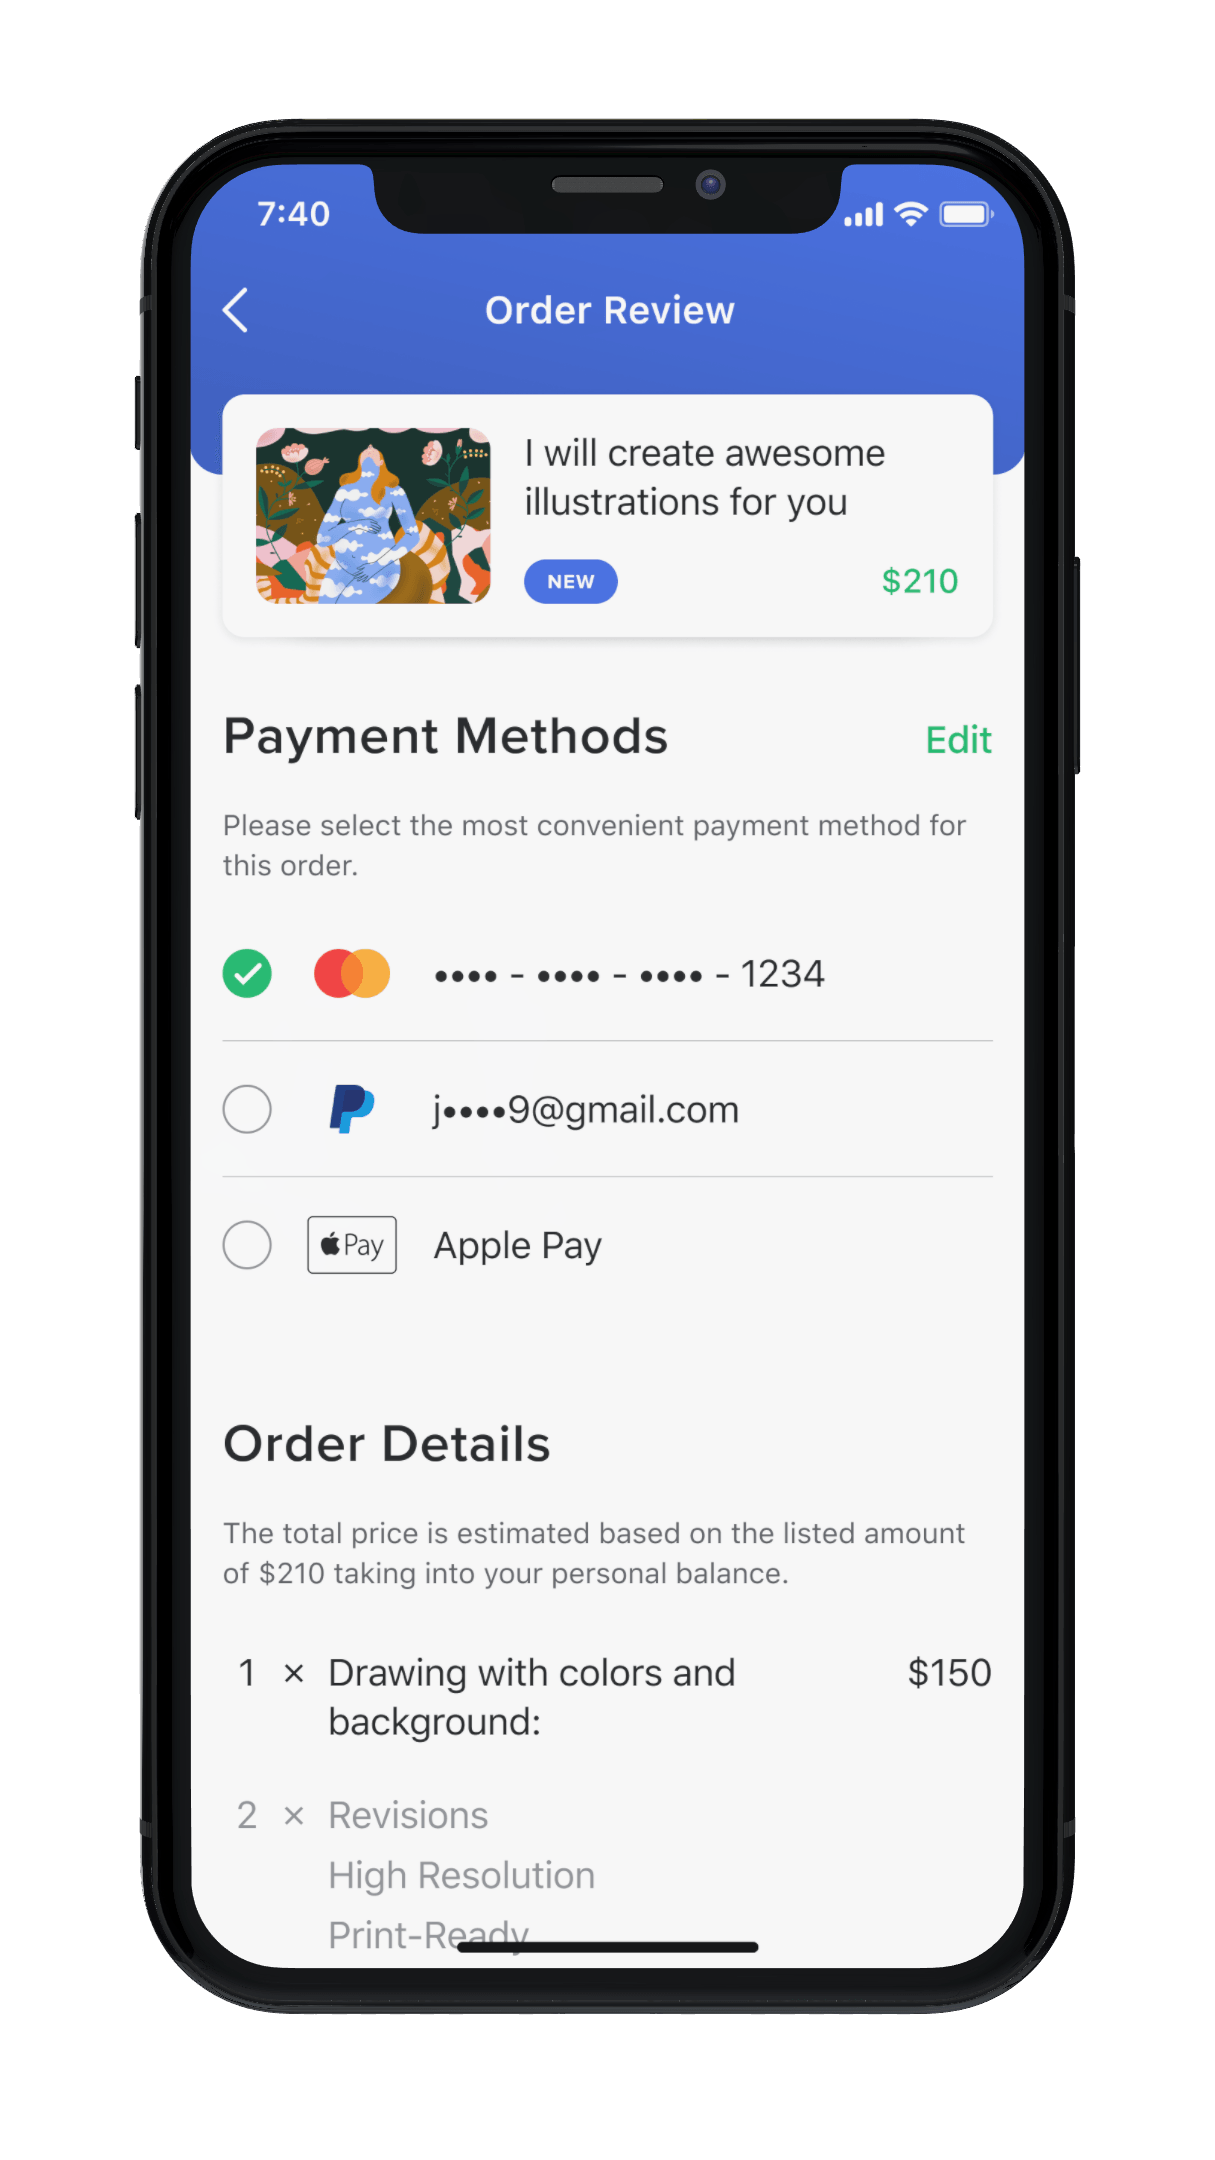 orderreview_03